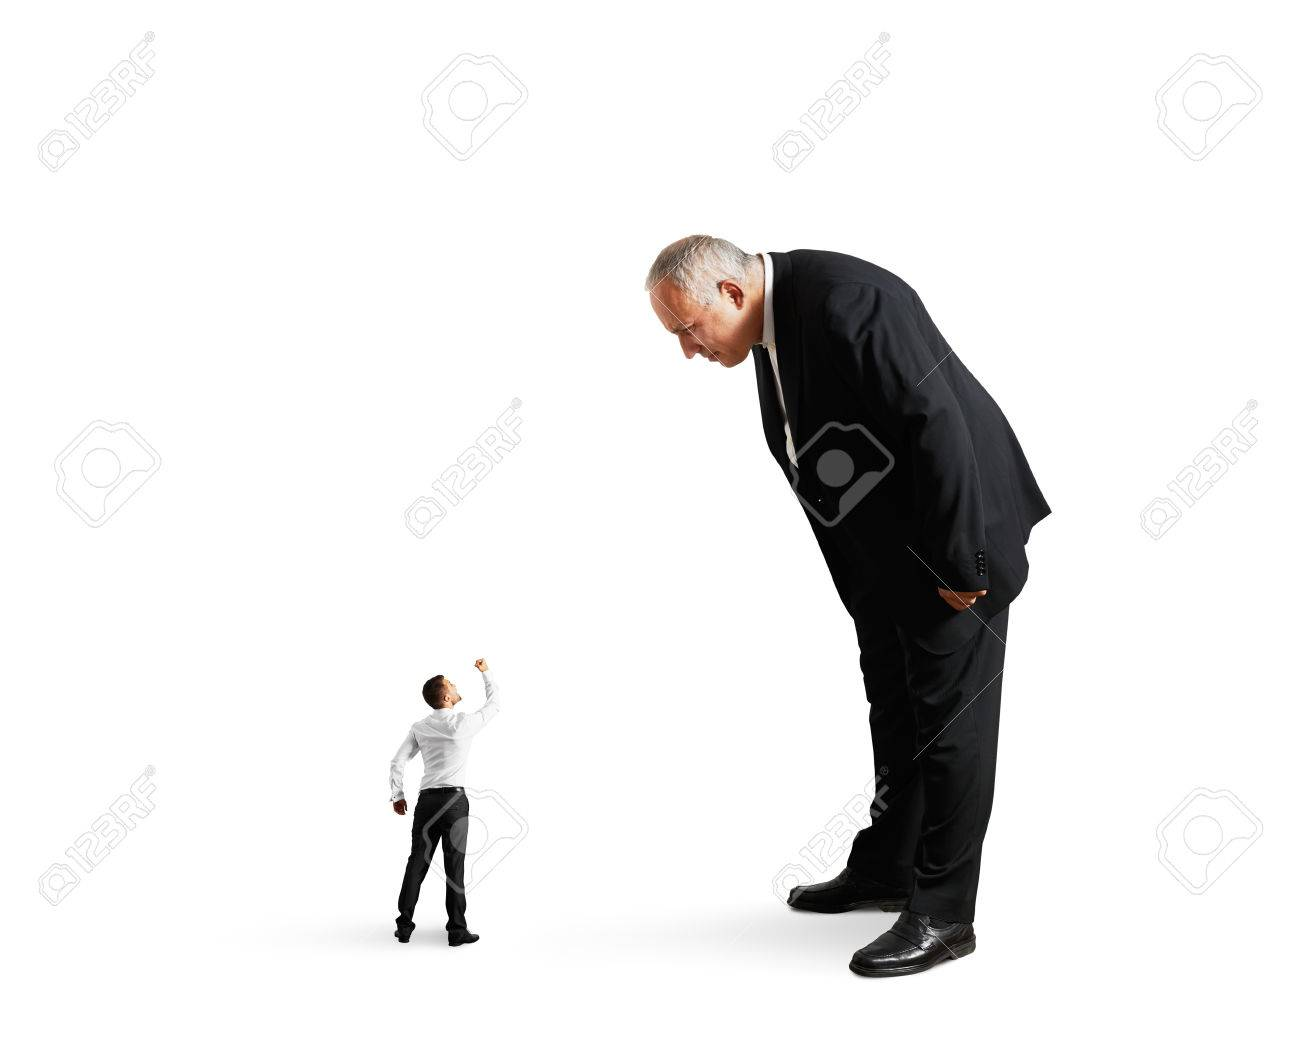 big boss good looking at small worker isolated on white stock photo big boss good looking at small worker isolated on white background